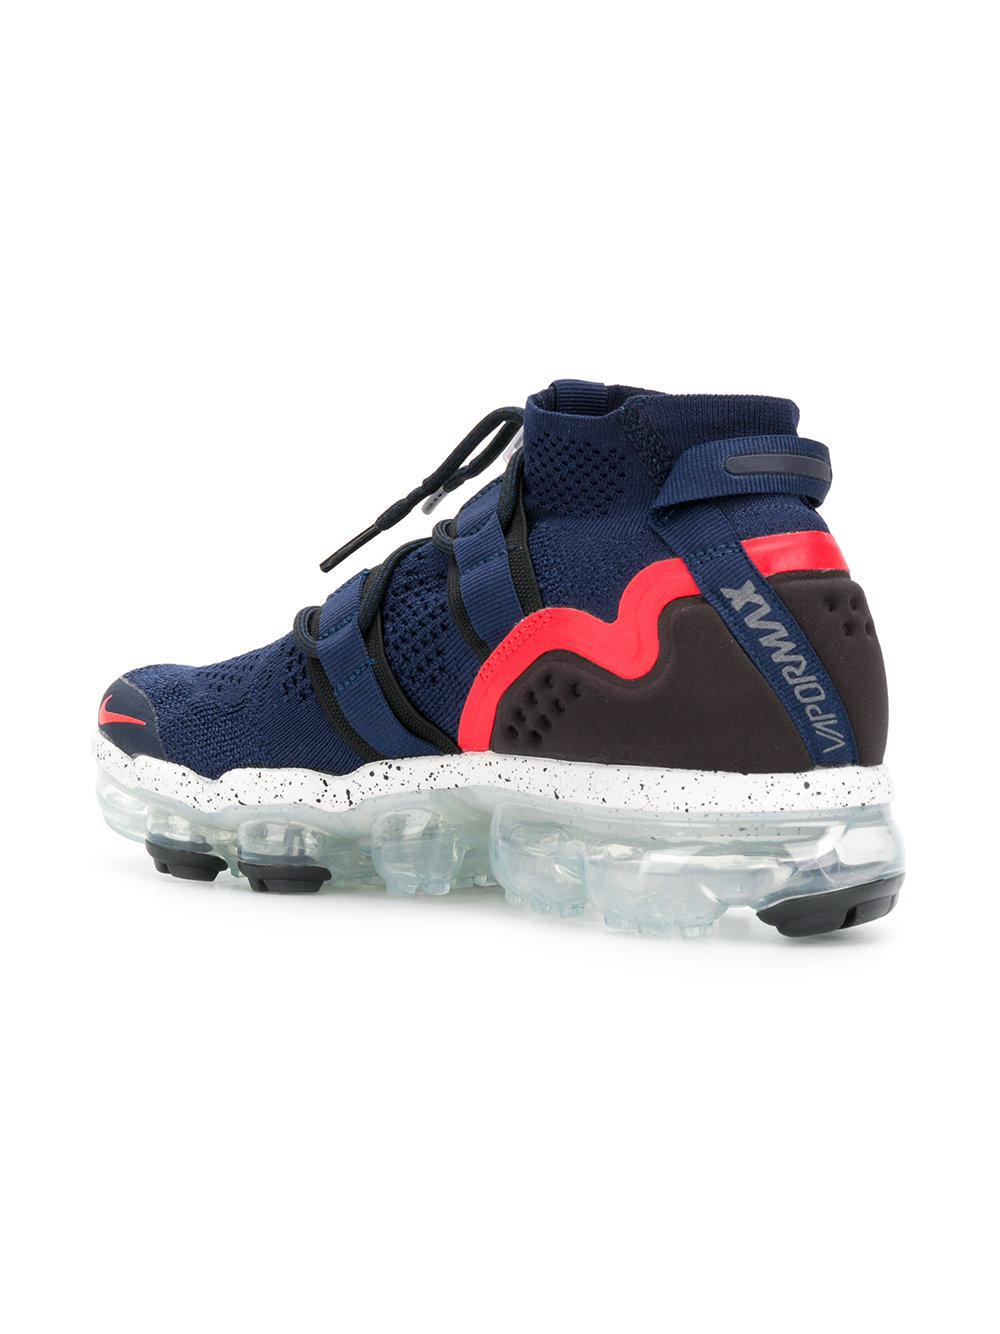 47ab9e8f6a509 Nike Lab Air Vapormax Flyknit Utility Sneakers in Blue for Men - Lyst